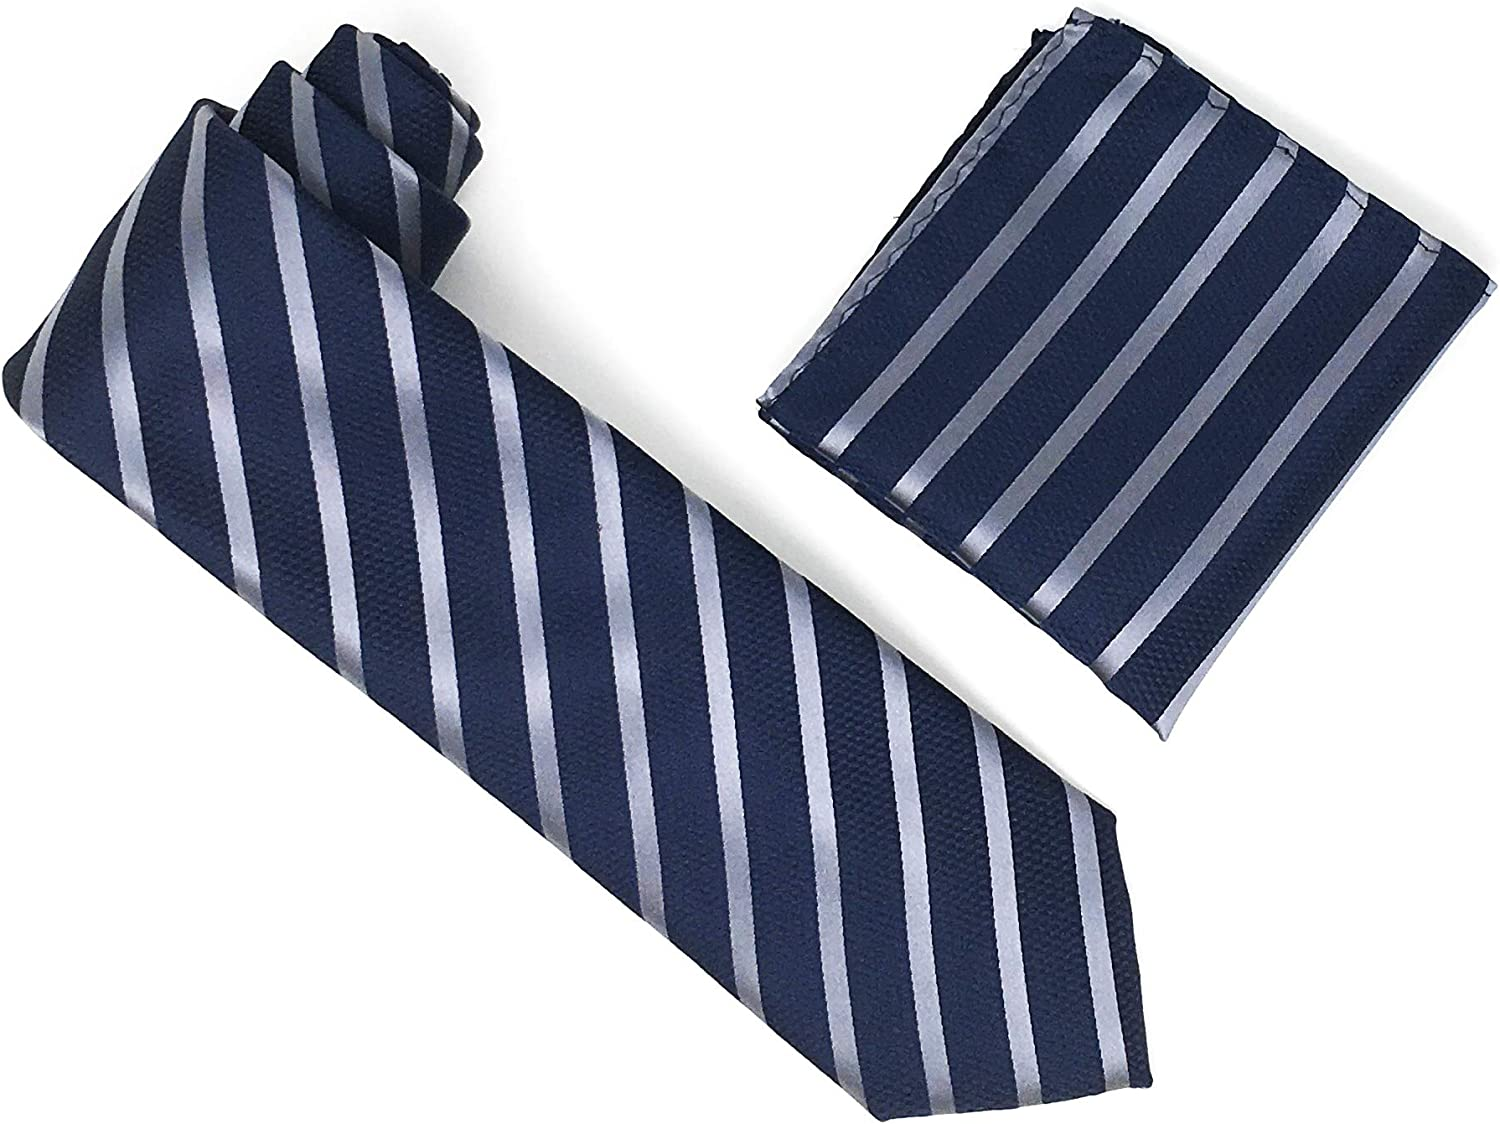 Navy & Grey Stripped 100% Silk Woven Necktie With Matching Pocket Square